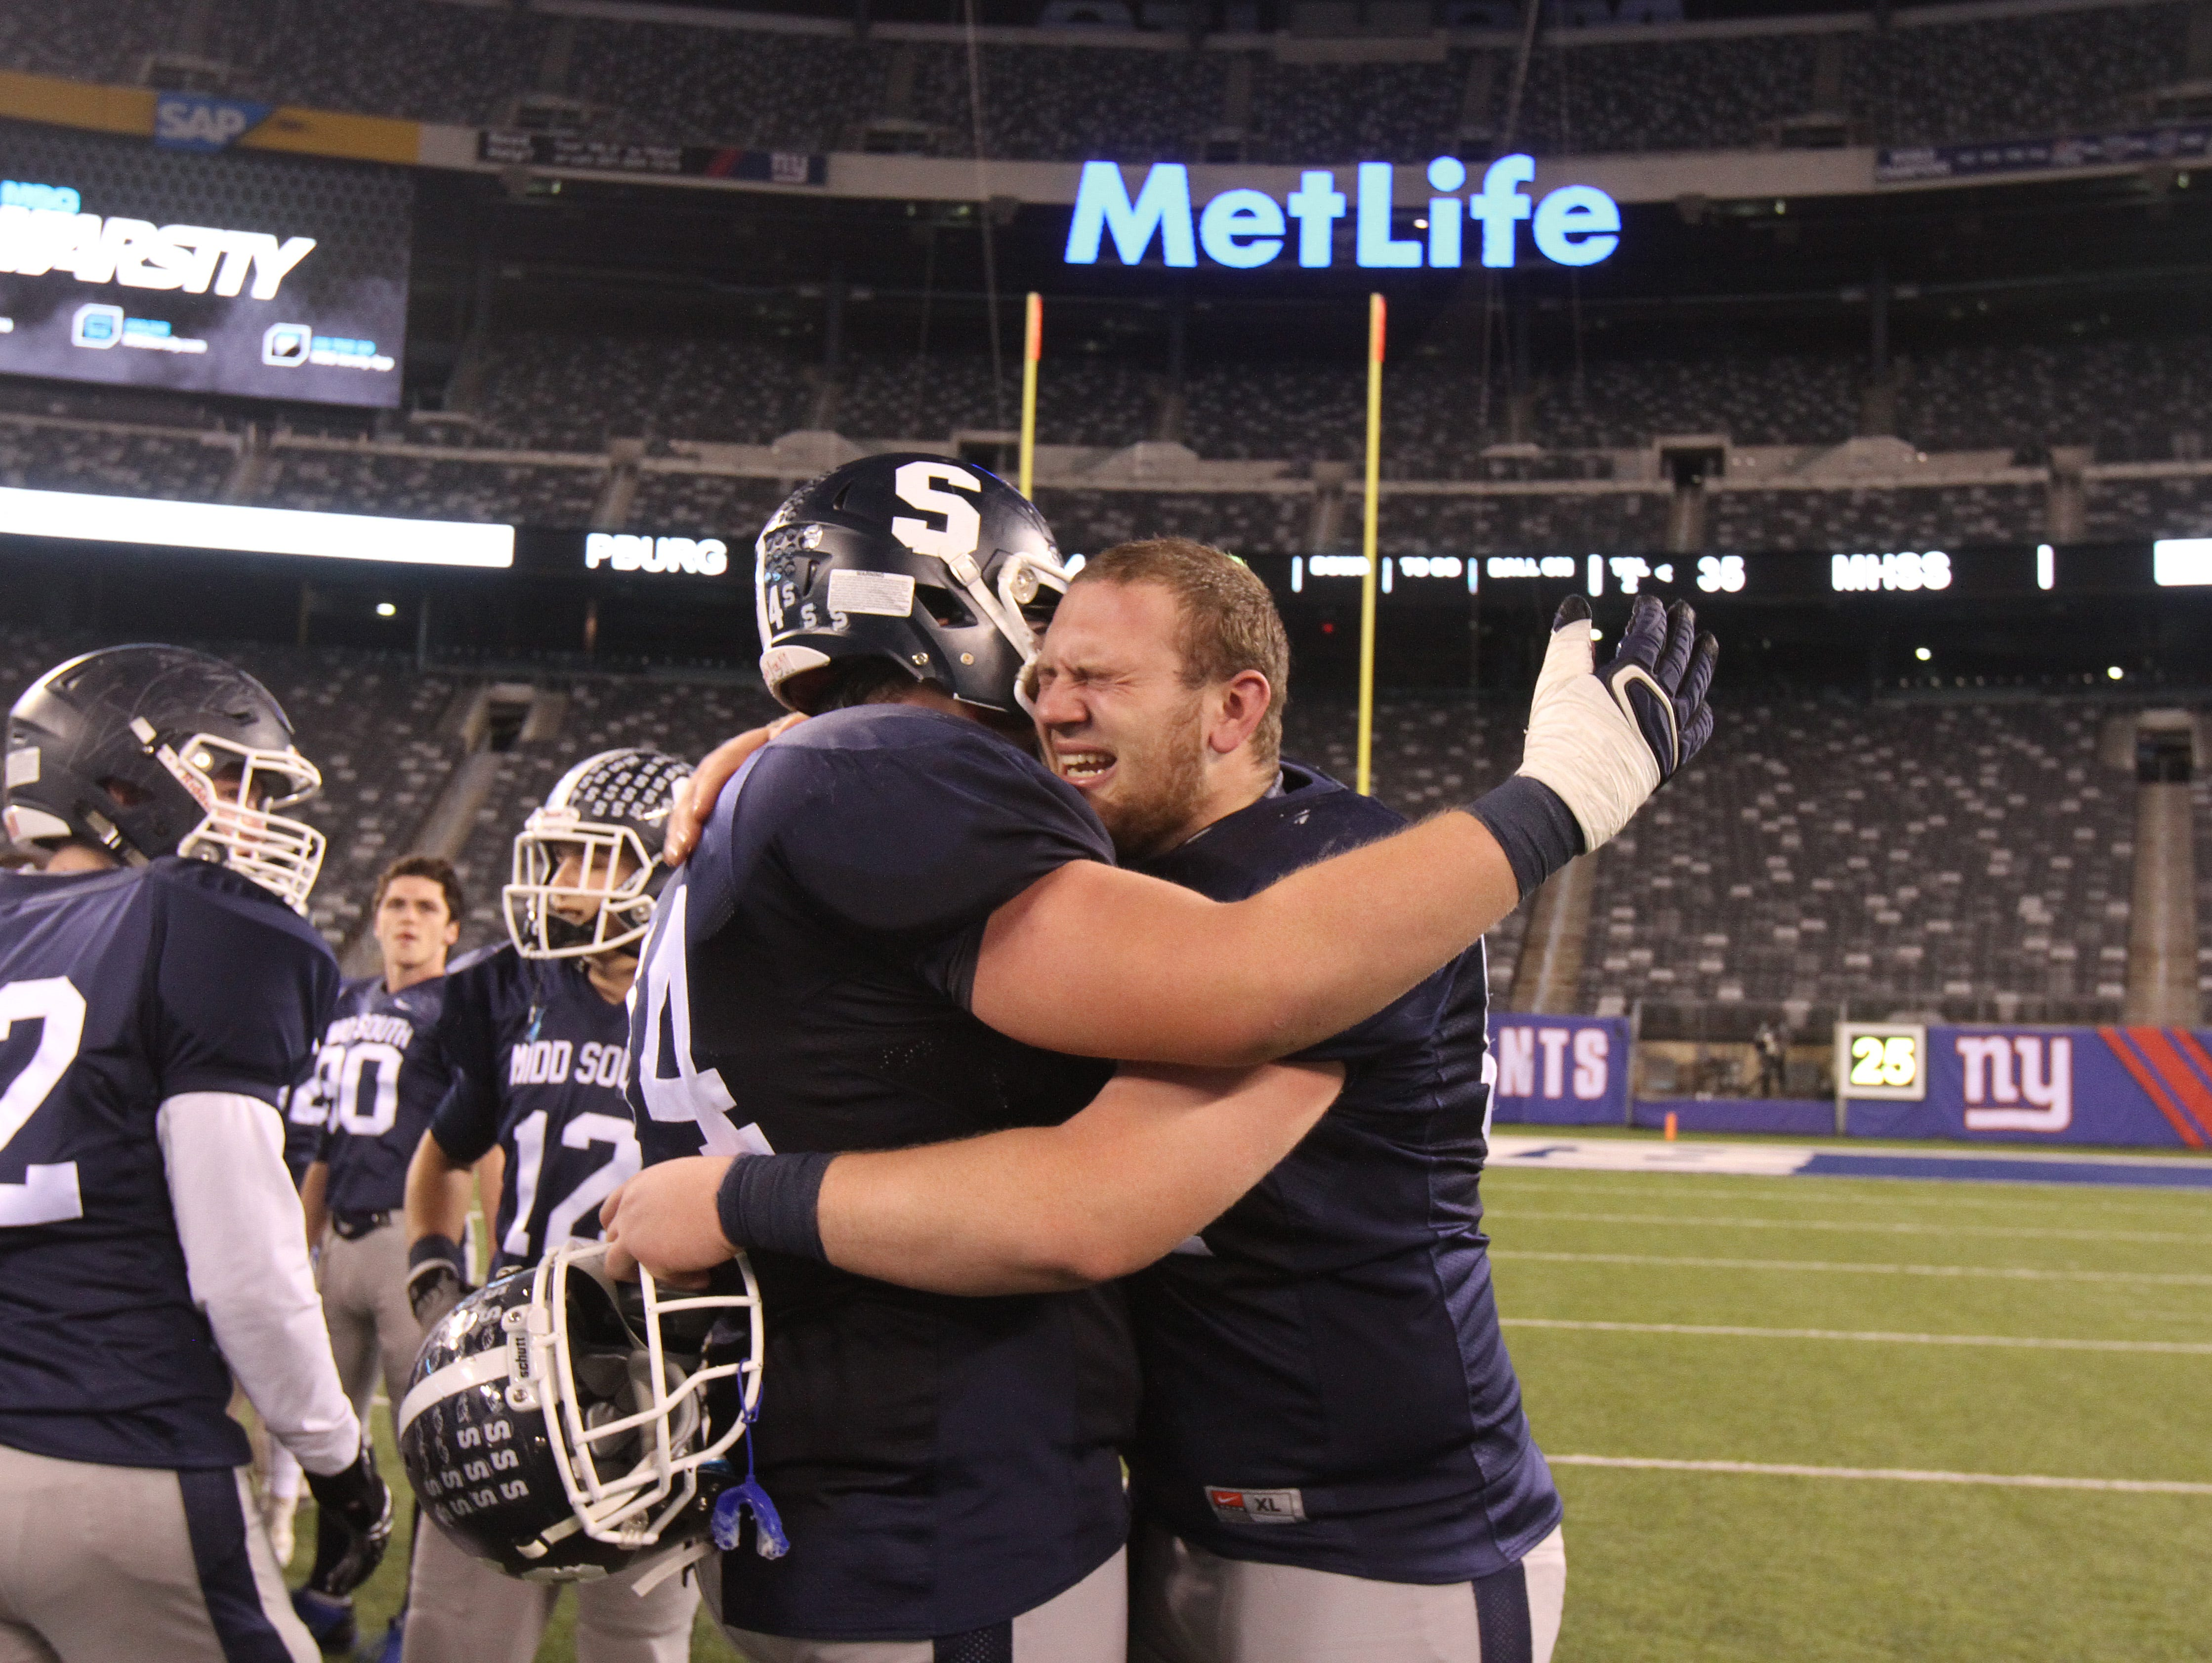 Middletown South High School football players Joe Rutkowski and Michael Wilson celebrate winning the state title against Phillipsburg in the North 2 Group IV game of the 2015 NJSIAA/MetLife Stadium High School Football Championships at MetLife Stadium in East Rutherford, NJ Saturday December 5, 2015.